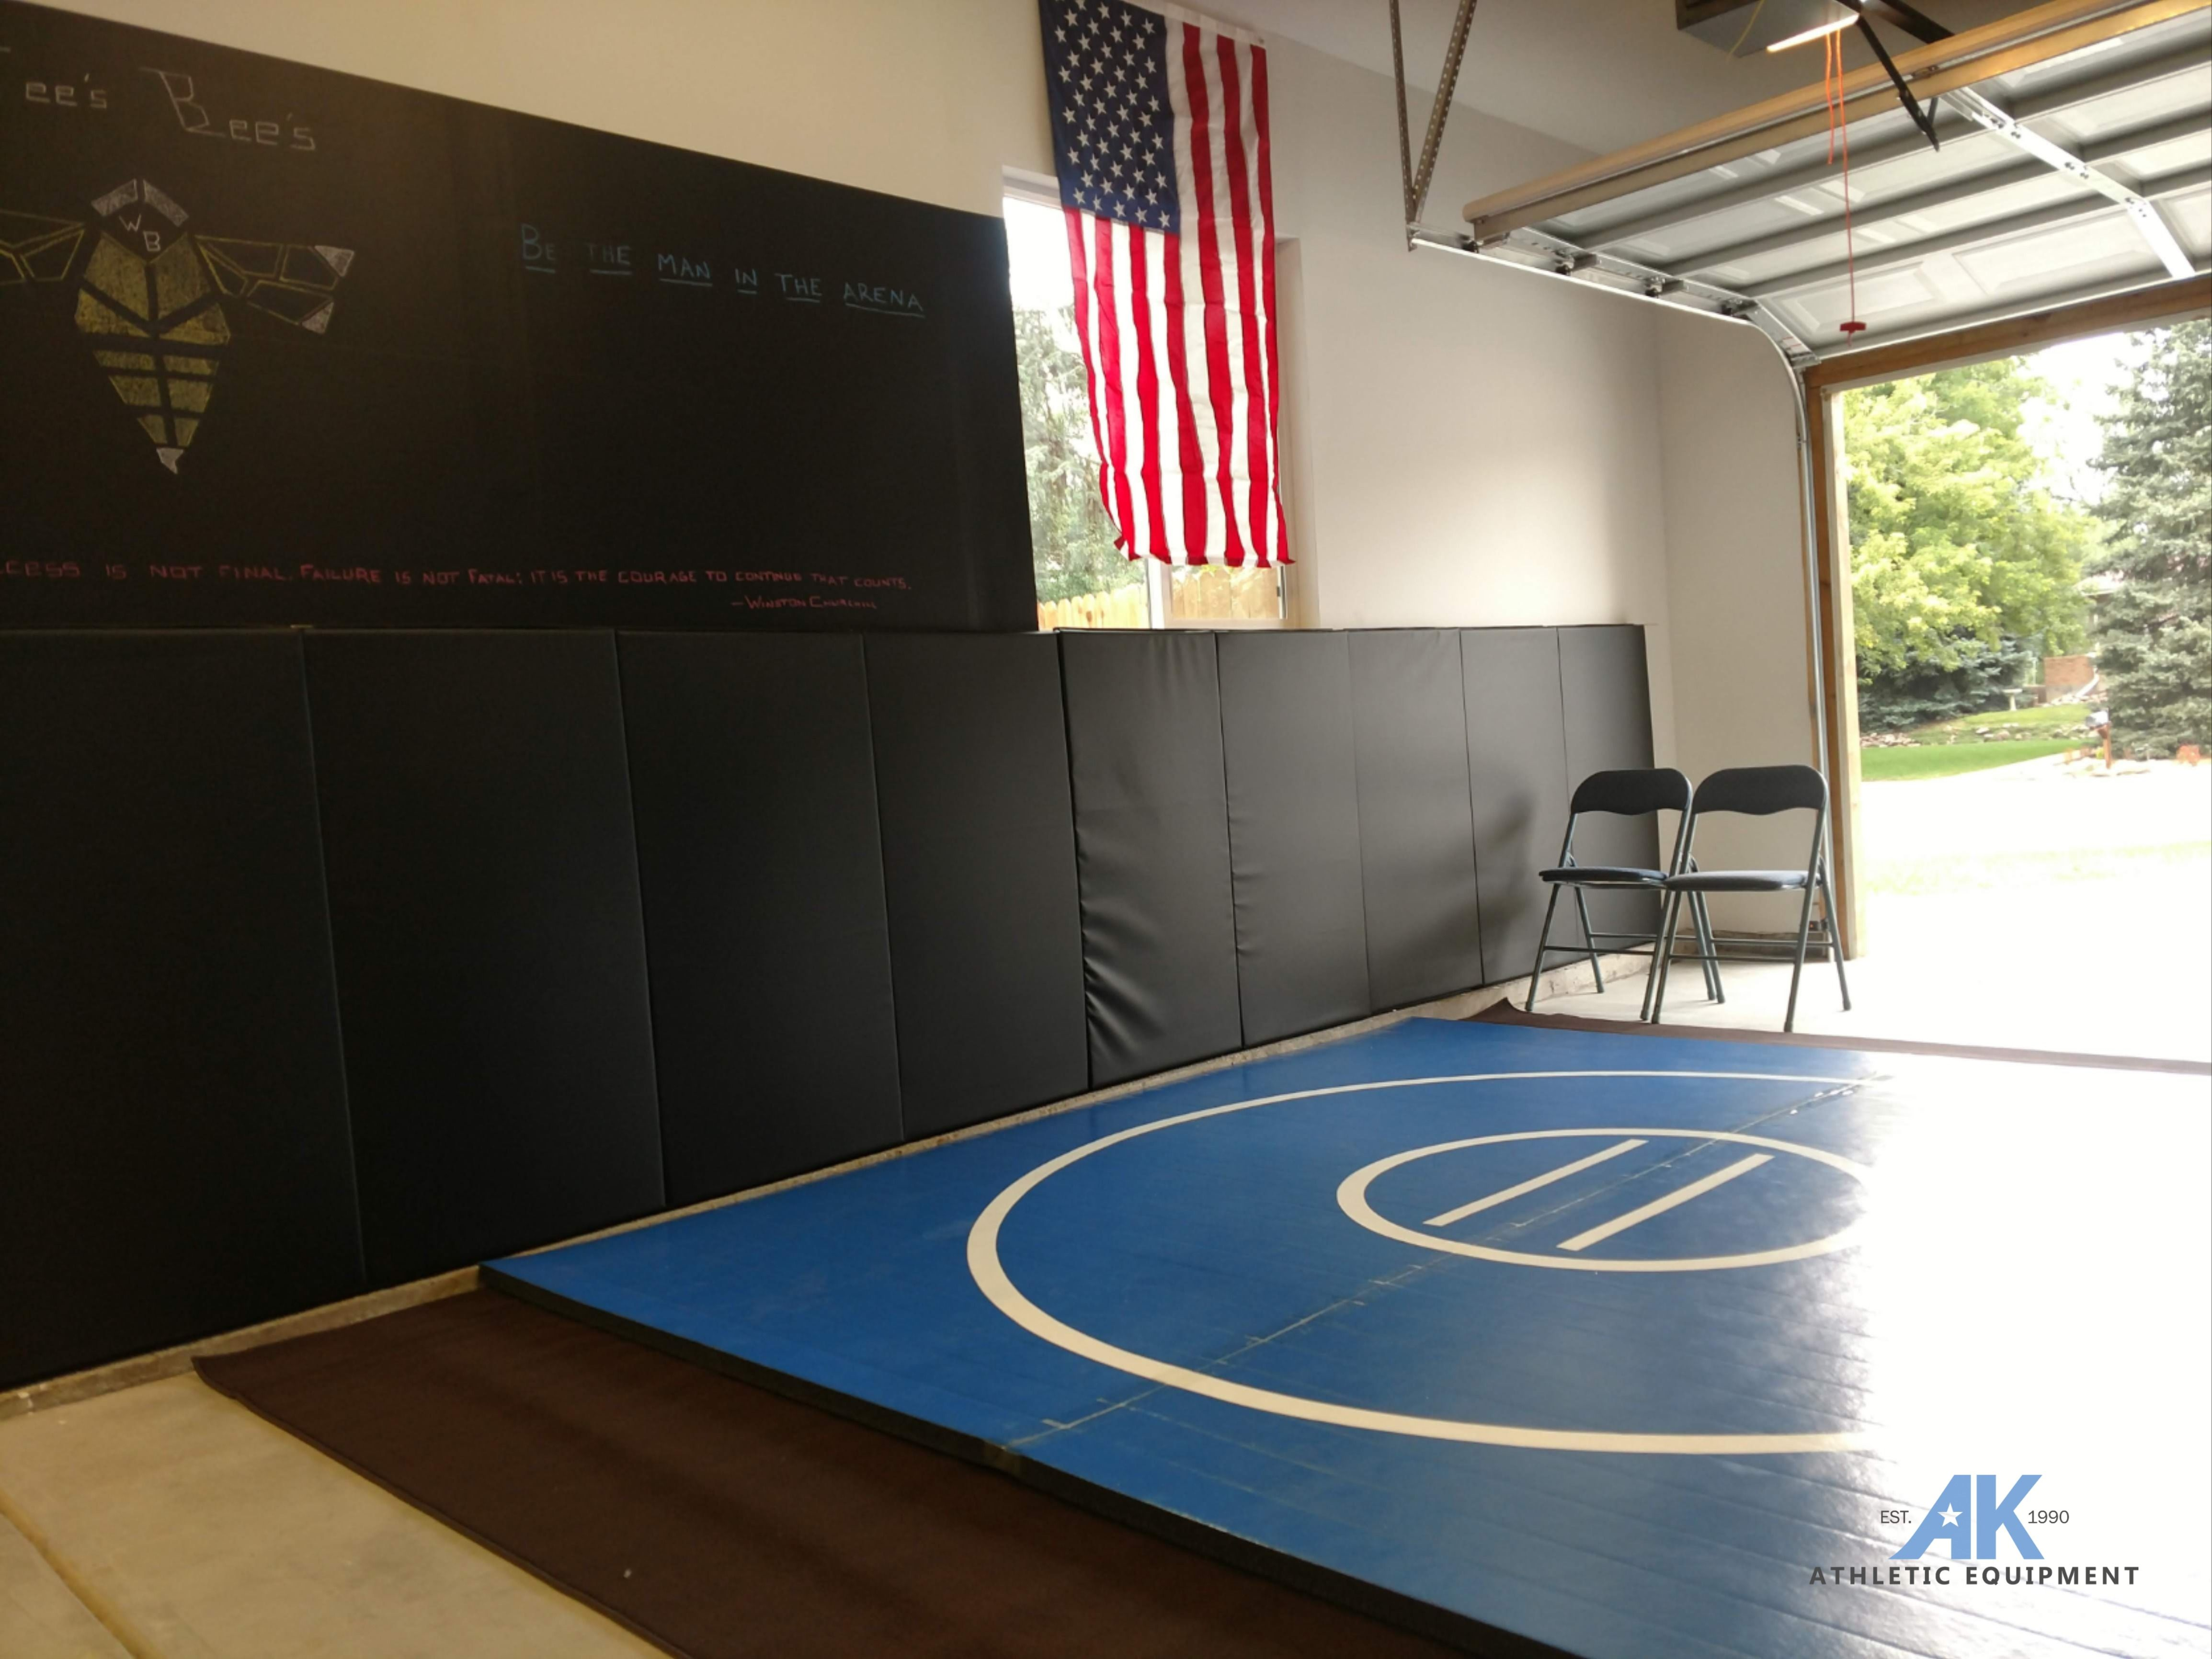 Instant Wrestling Room 10' x 10' wrestling mat and